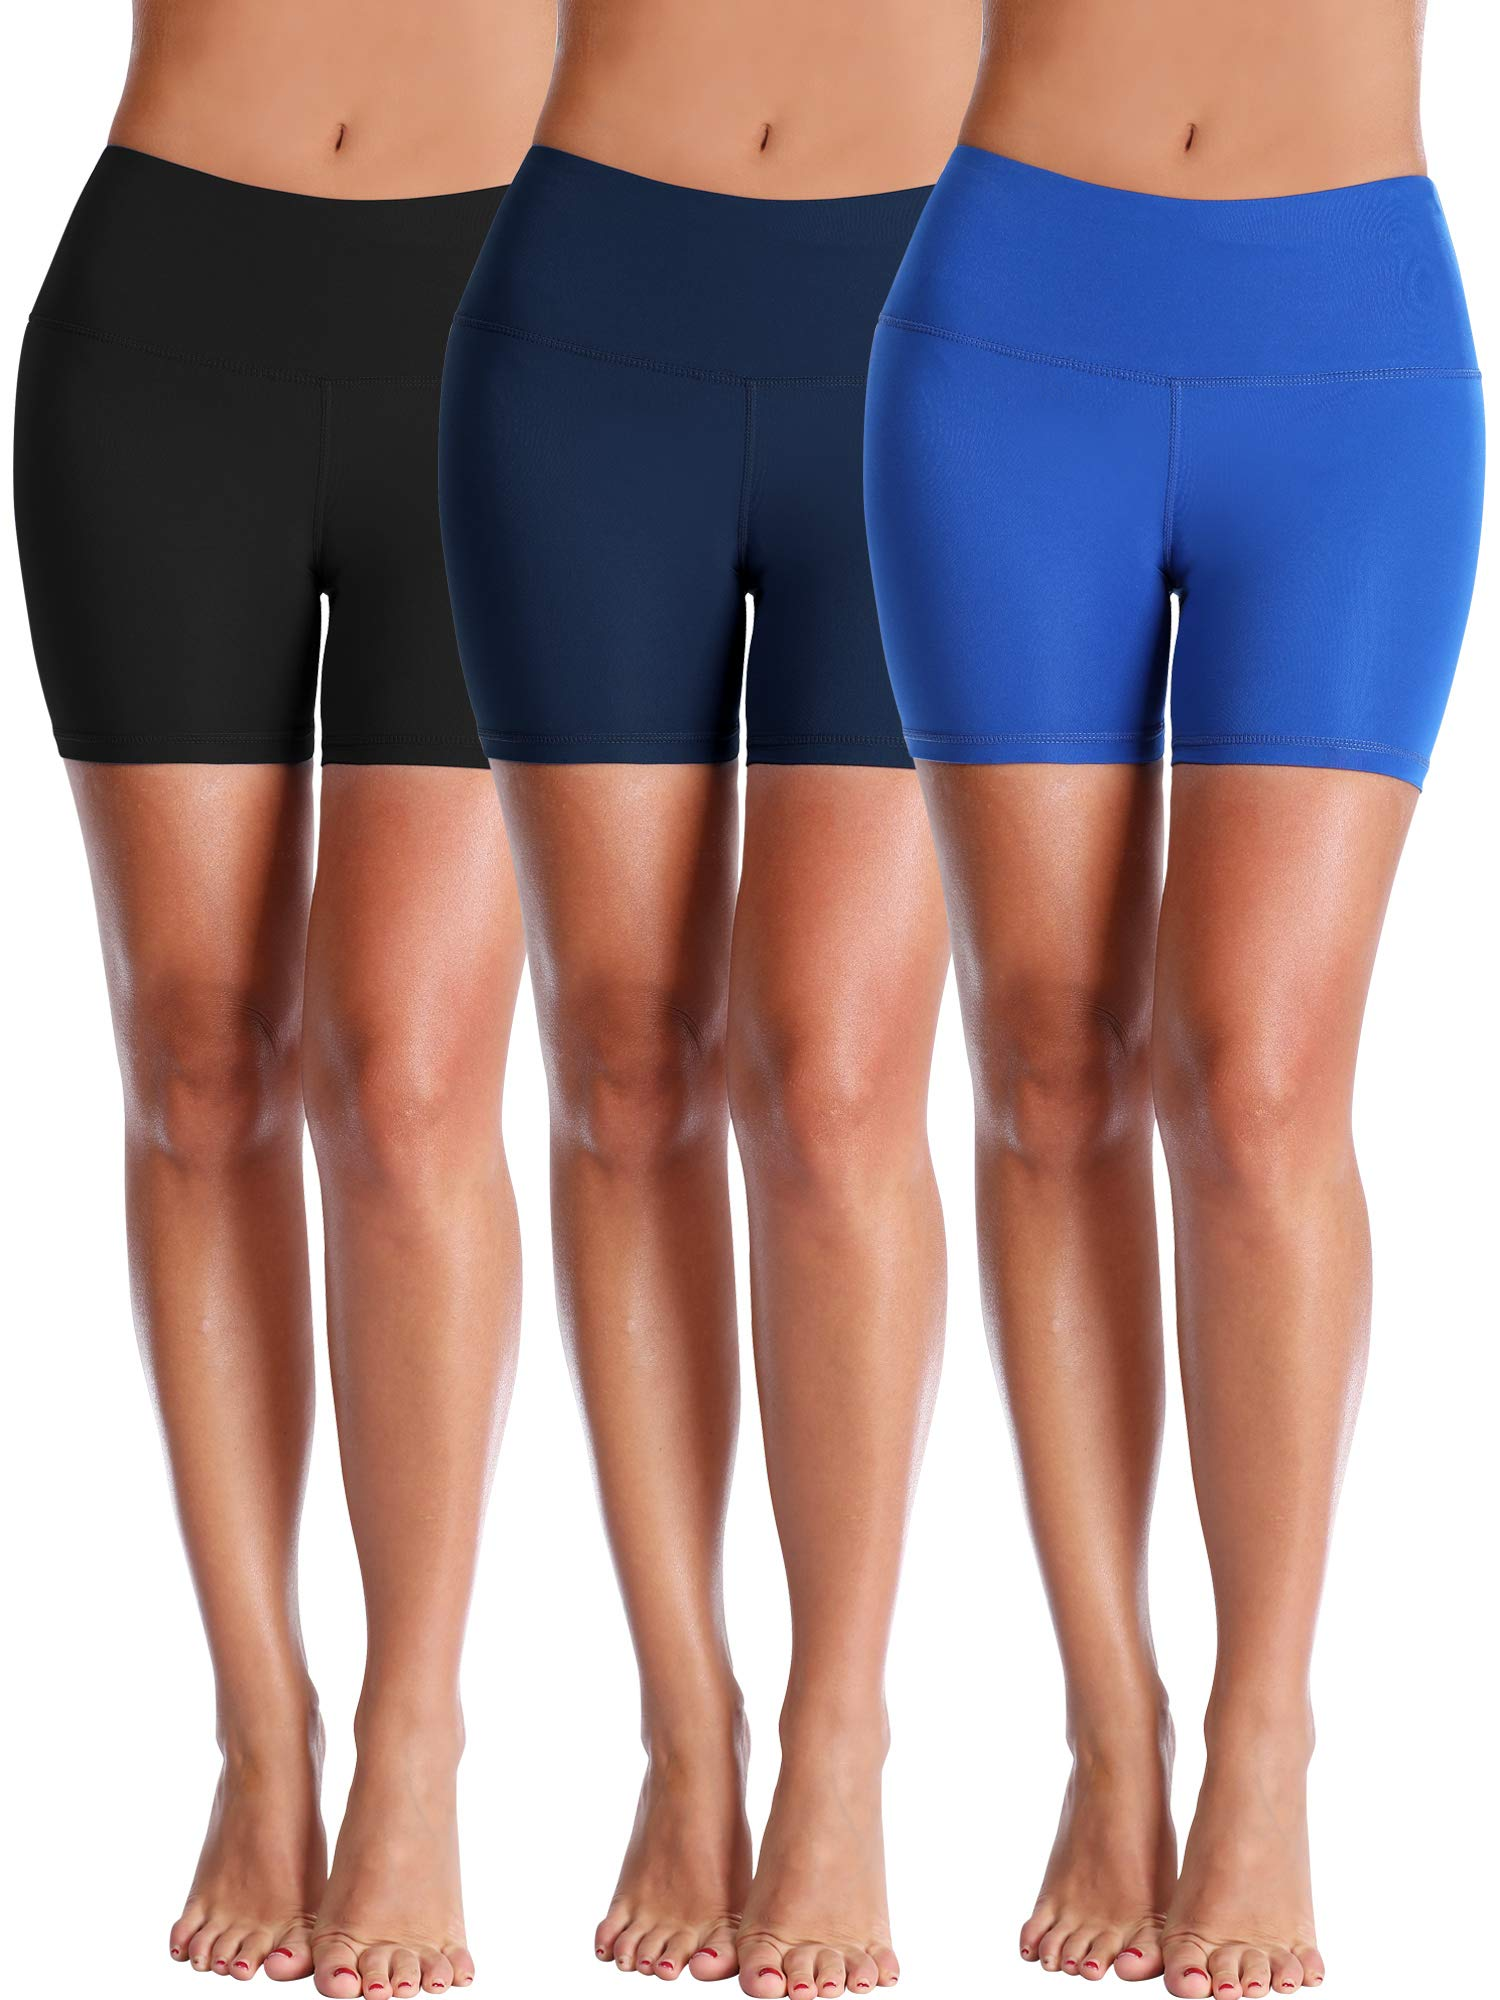 Cadmus Women's High Waisted Compression Shorts,3 Pack,1025,Black,Navy Blue,Blue,Small by Cadmus